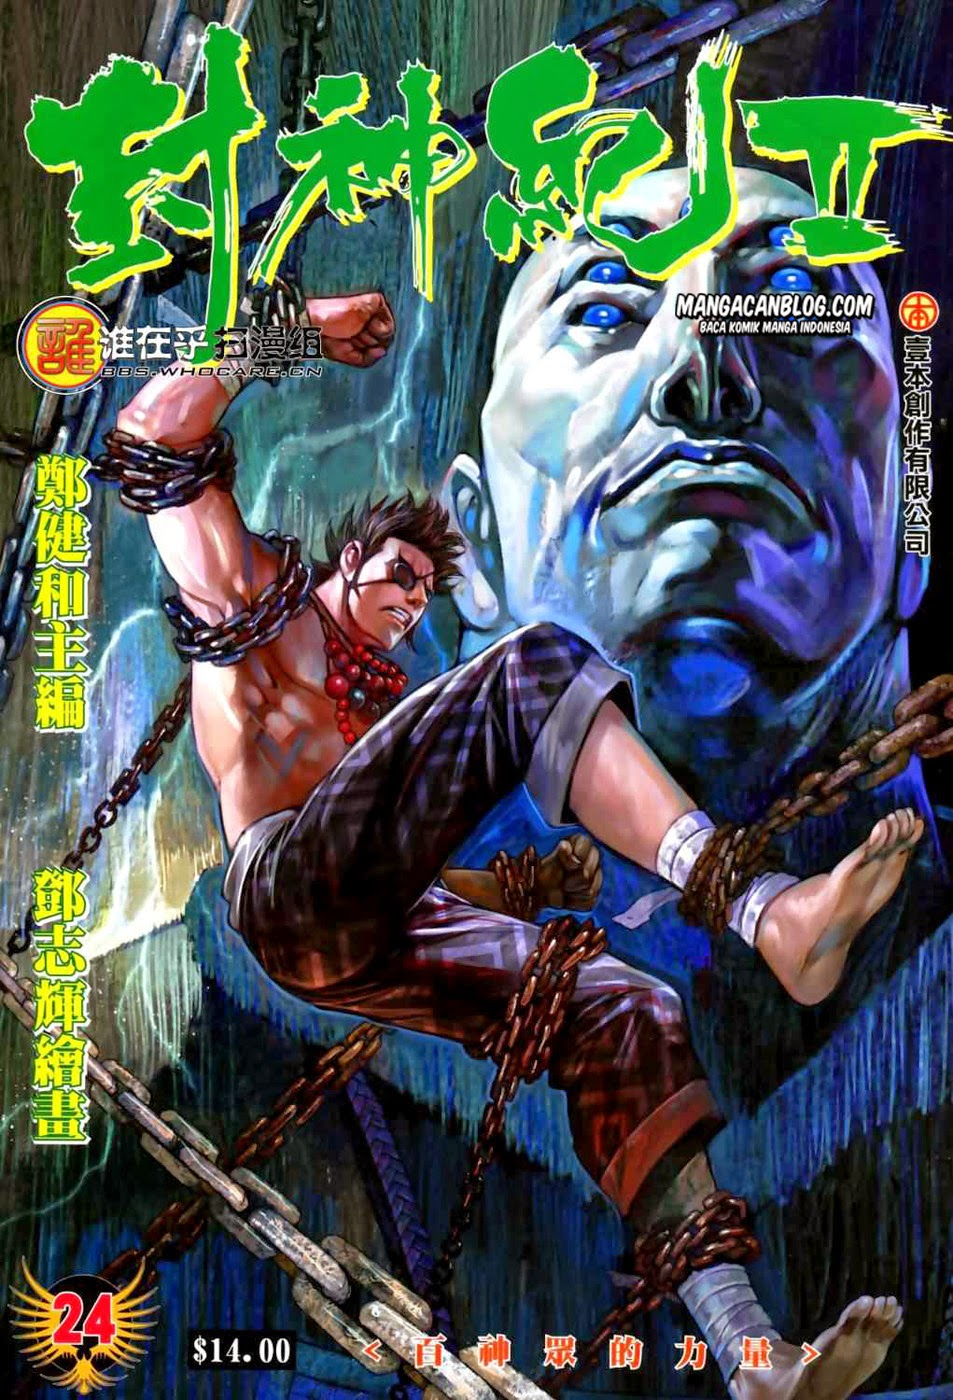 Dilarang COPAS - situs resmi www.mangacanblog.com - Komik feng shen ji 2 024 - Kekuatan The Gods Hundred Companions 25 Indonesia feng shen ji 2 024 - Kekuatan The Gods Hundred Companions Terbaru |Baca Manga Komik Indonesia|Mangacan